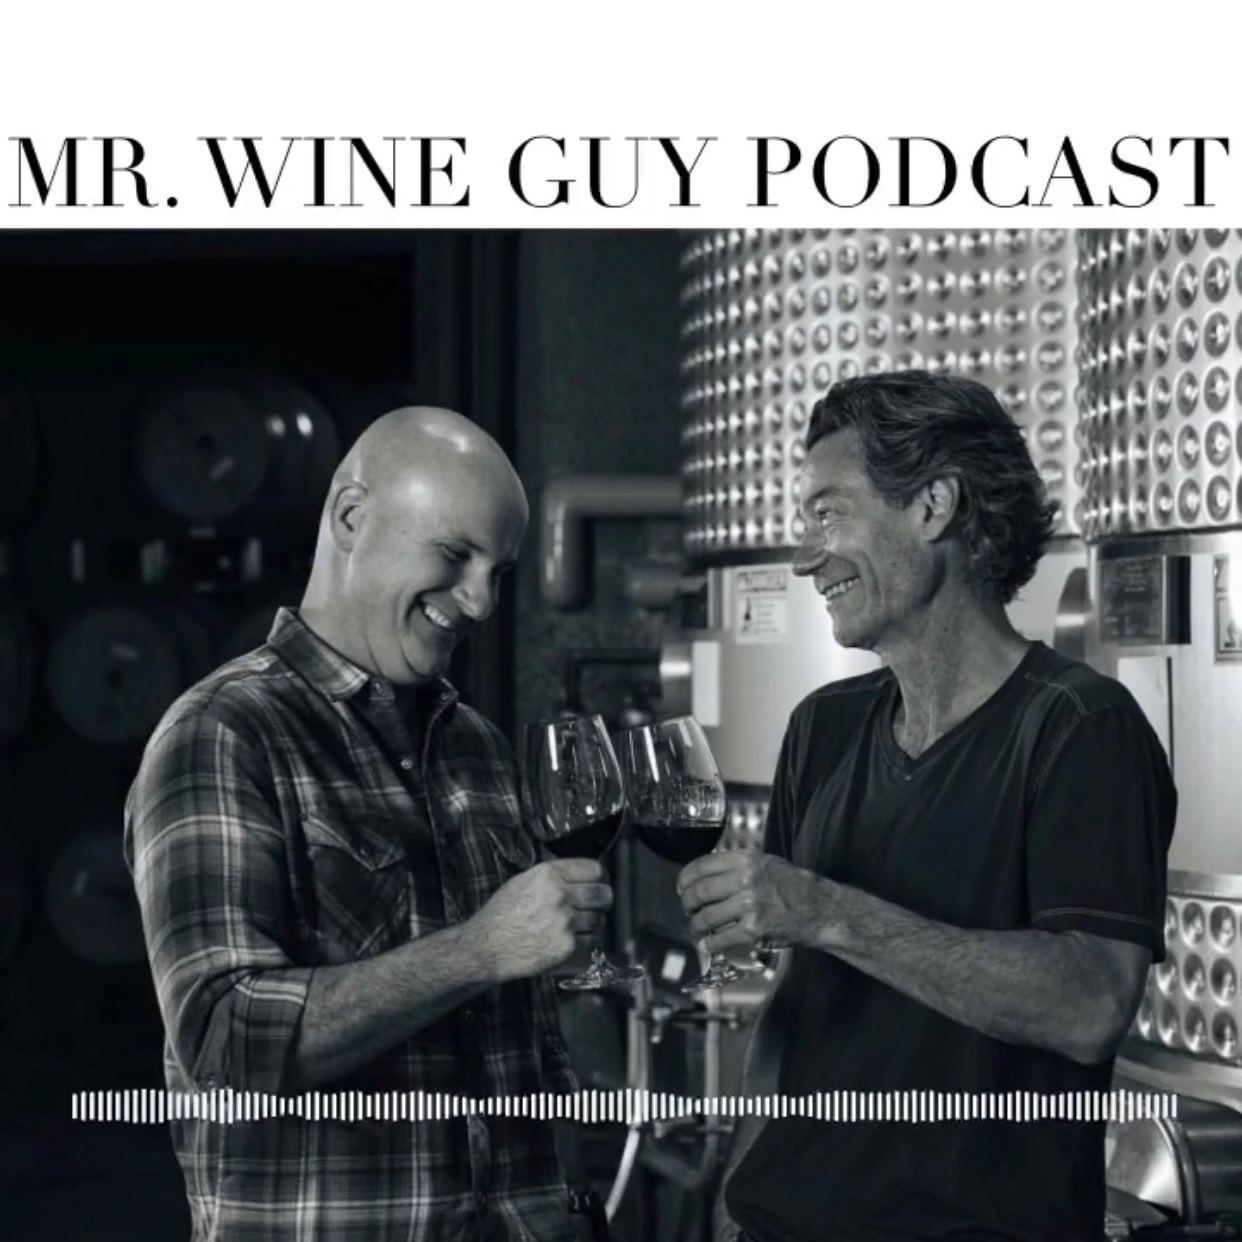 Jnani Matson And John Boich Toasting For Mr. Wine Guy Podcast